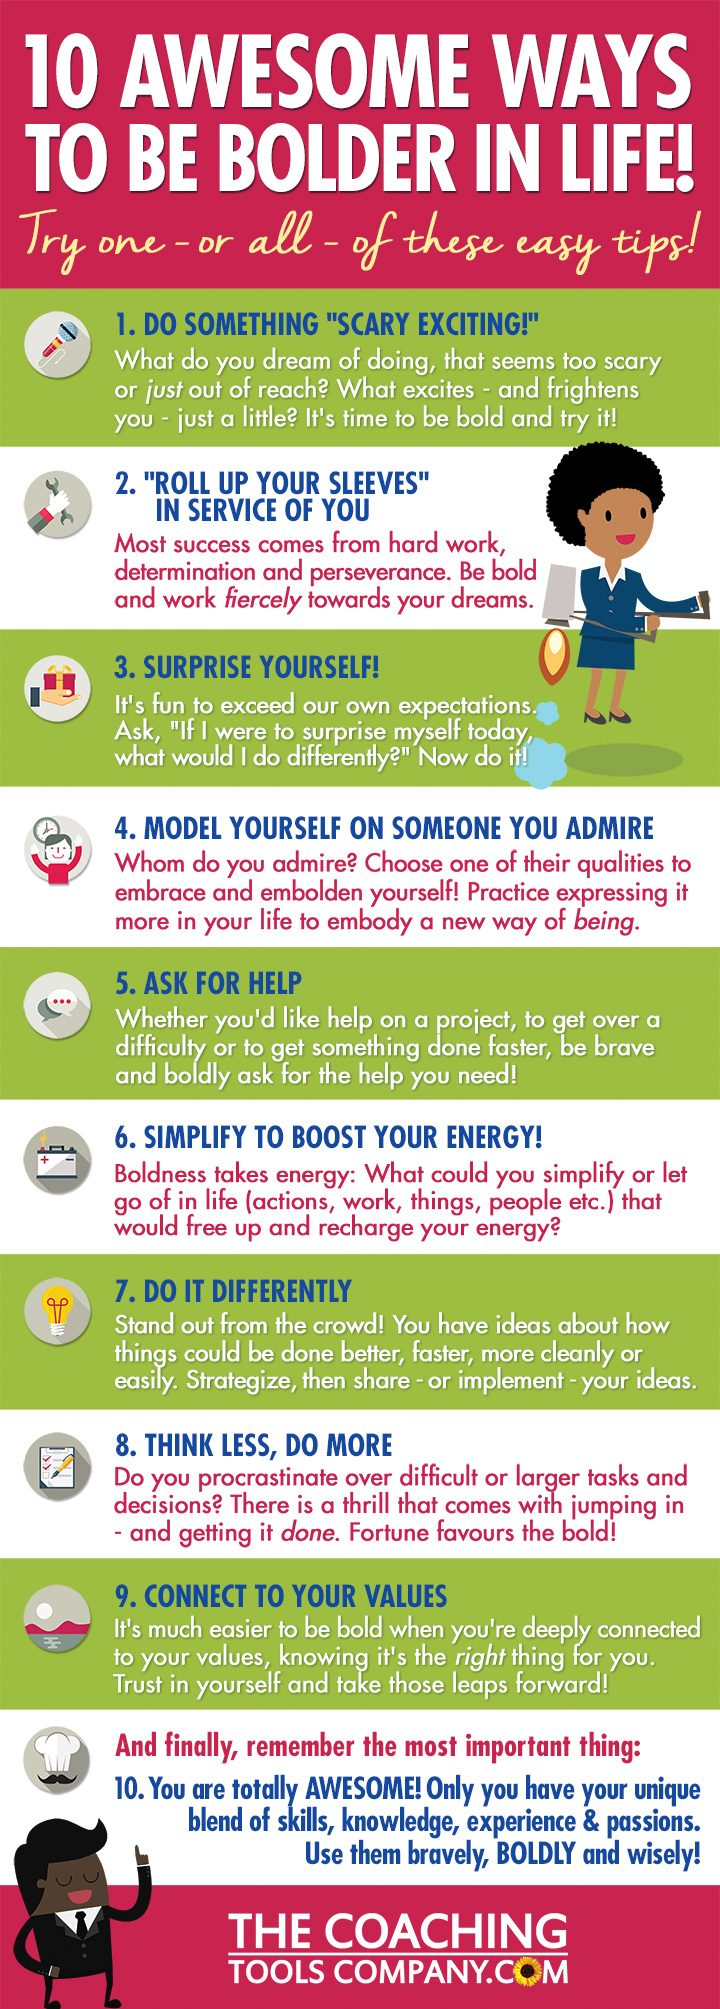 10 Ways to be Bolder in Life Infographic